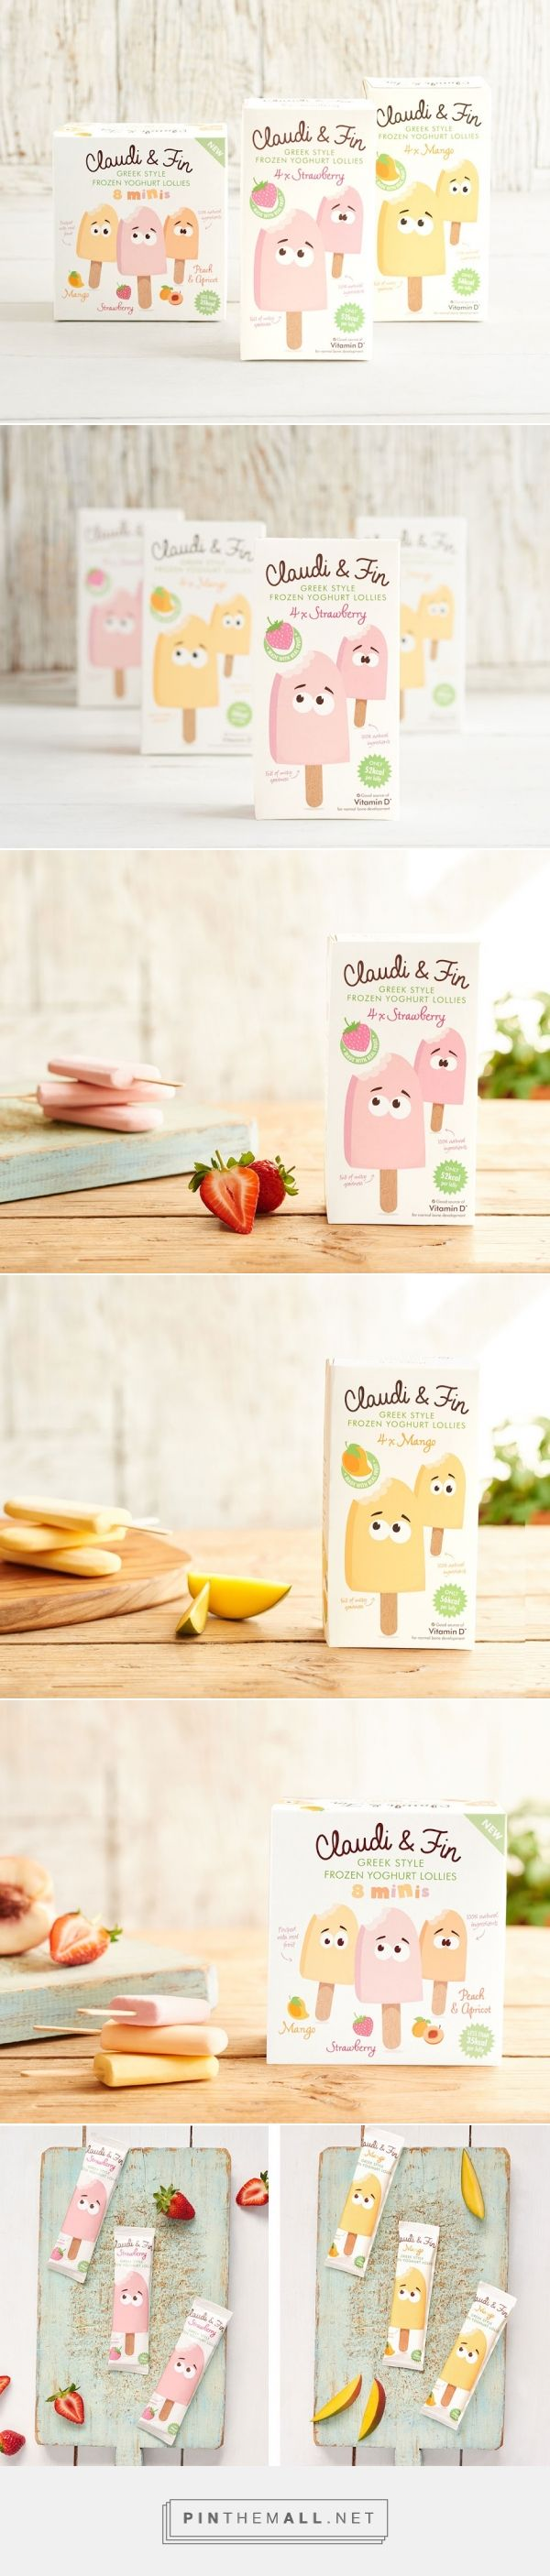 Claudi & Fin - Packaging of the World - Creative Package Design Gallery - http://www.packagingoftheworld.com/2016/04/claudi-fin.html